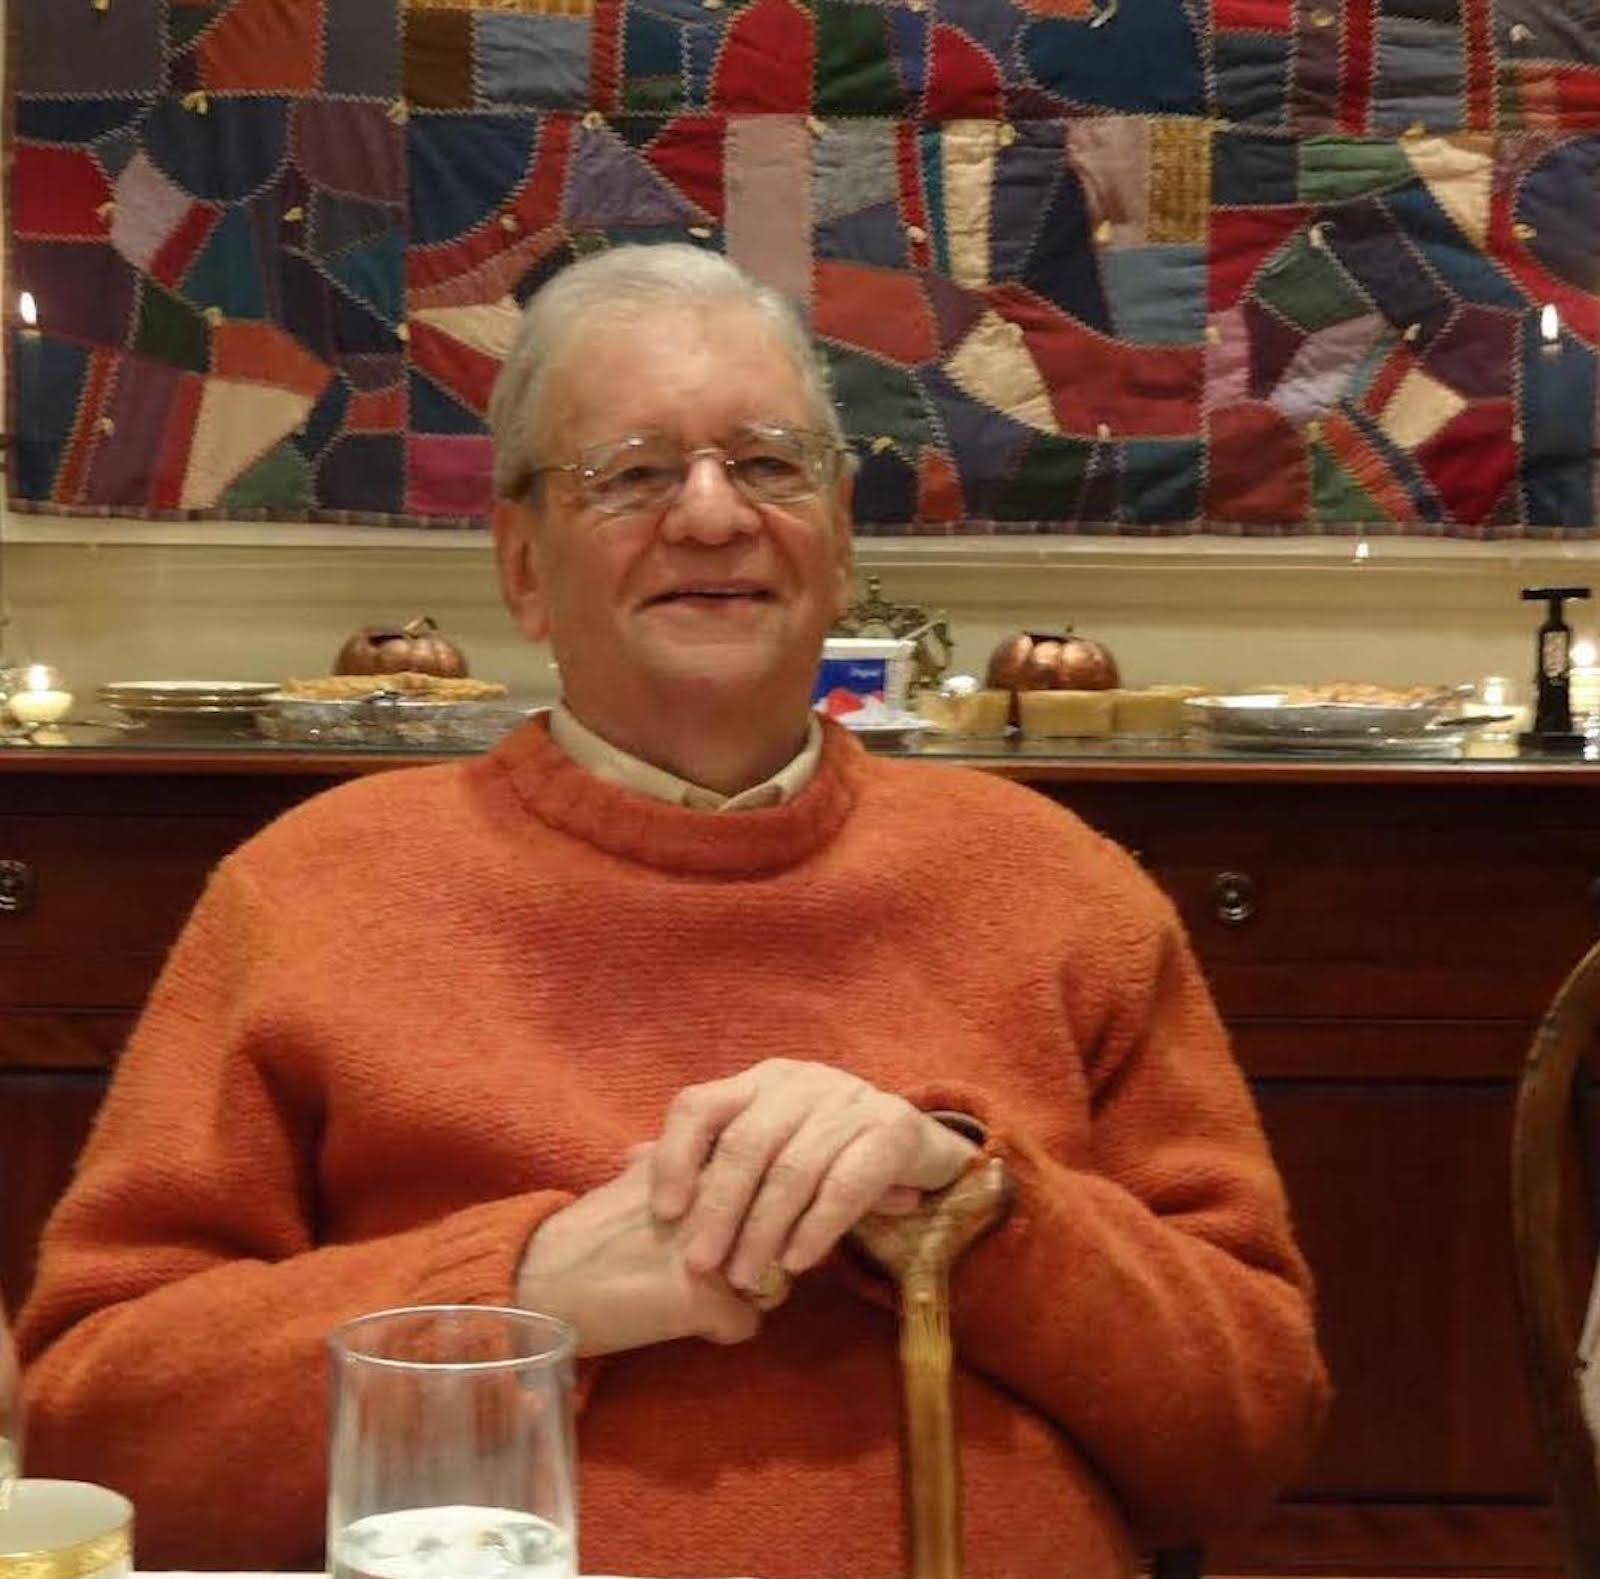 Don Gold was a longtime editor for magazines including Playboy, Travel + Leisure, Chicago, the Saturday Evening Post and Ladies' Home Journal. He also taught journalism at Columbia College Chicago.